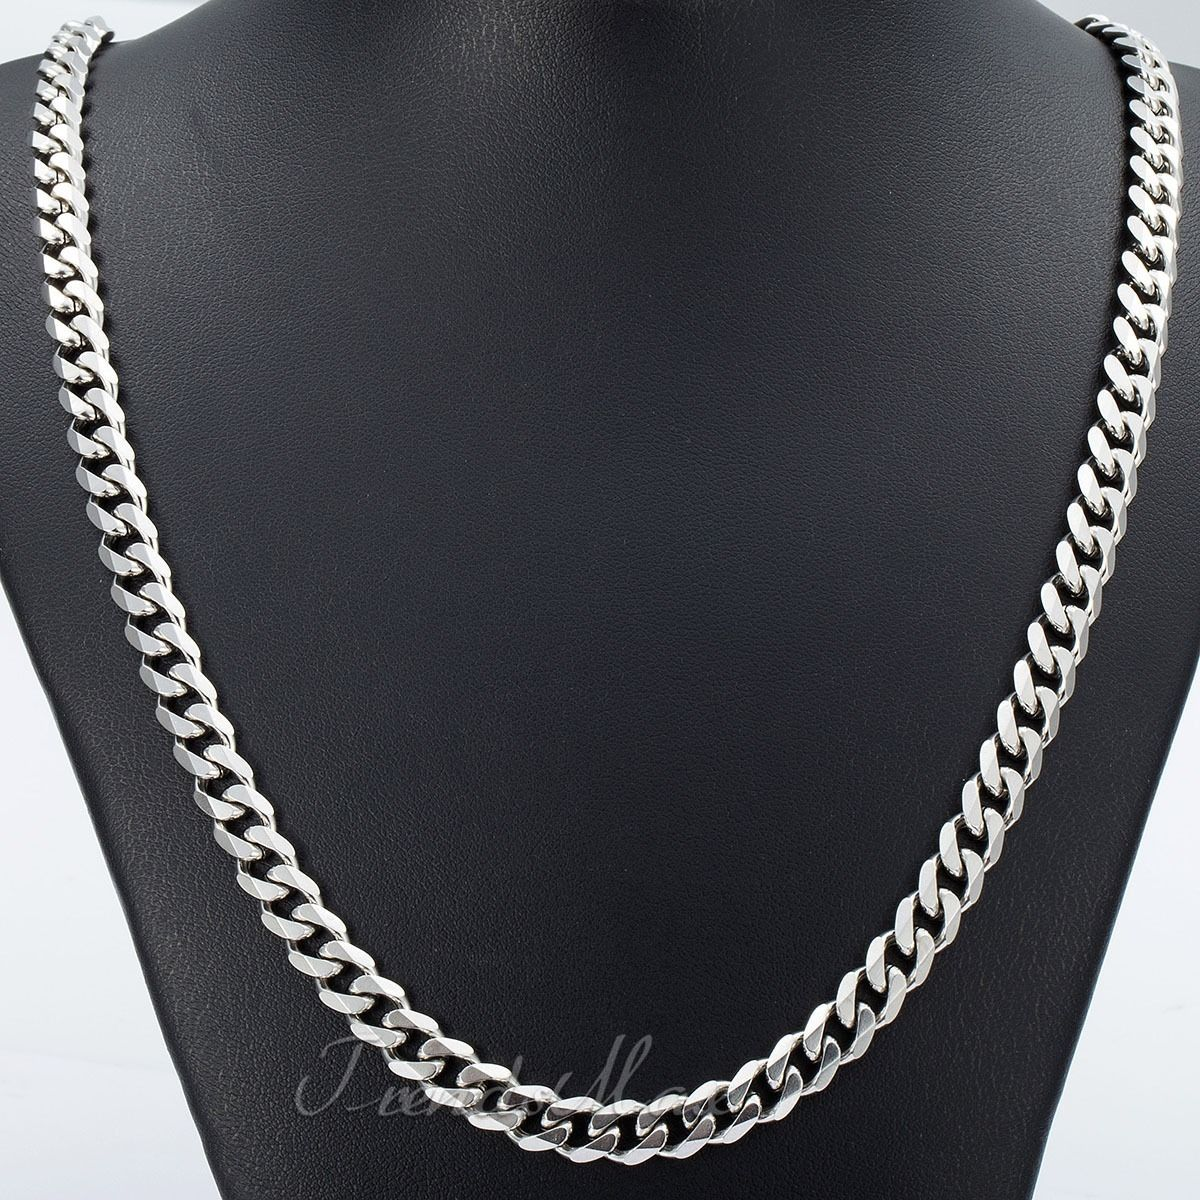 in mens chain item color jewelry silver necklace curb wholesale stamp plated shipping men collare with link free necklaces gold two cuban from real platinum tone